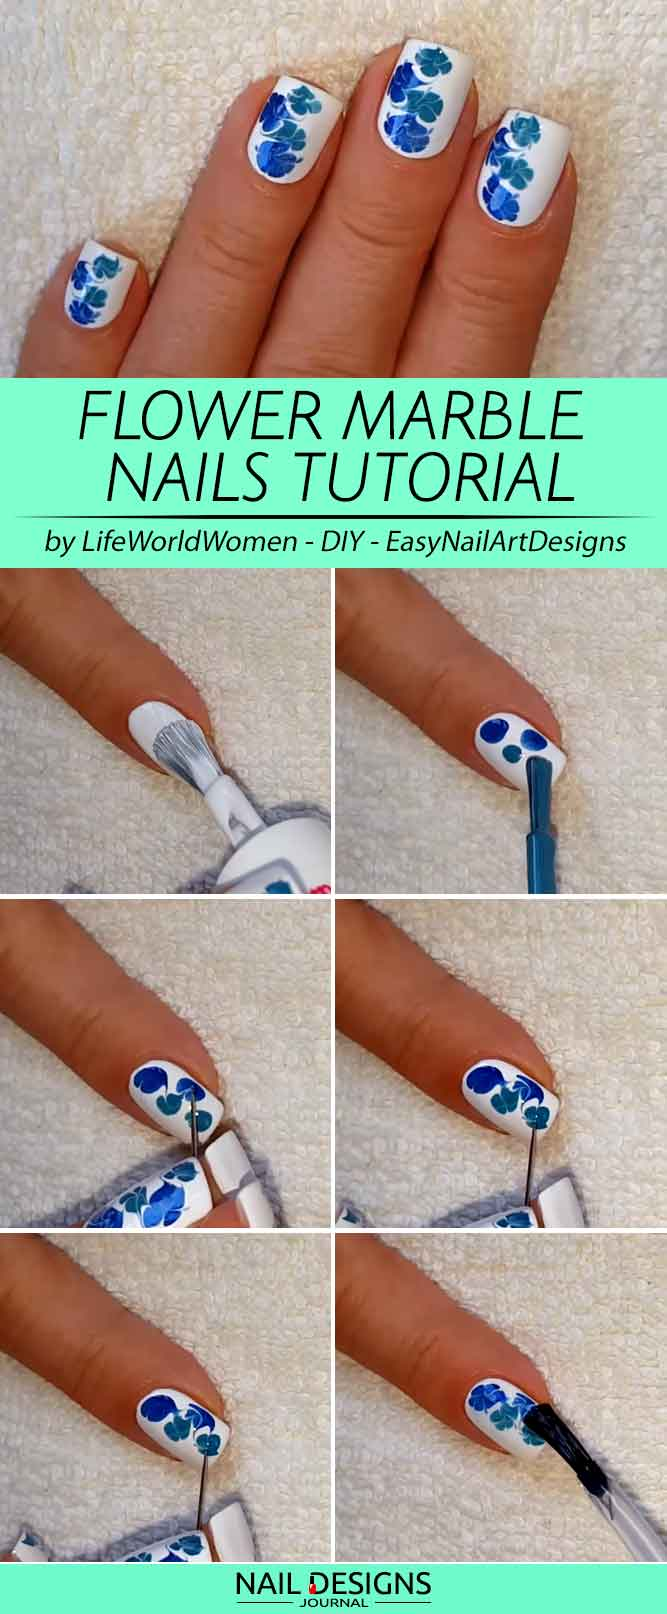 Flower Nails Design With Dry Marble Effect #bluenails #nailsdesign #flowernails